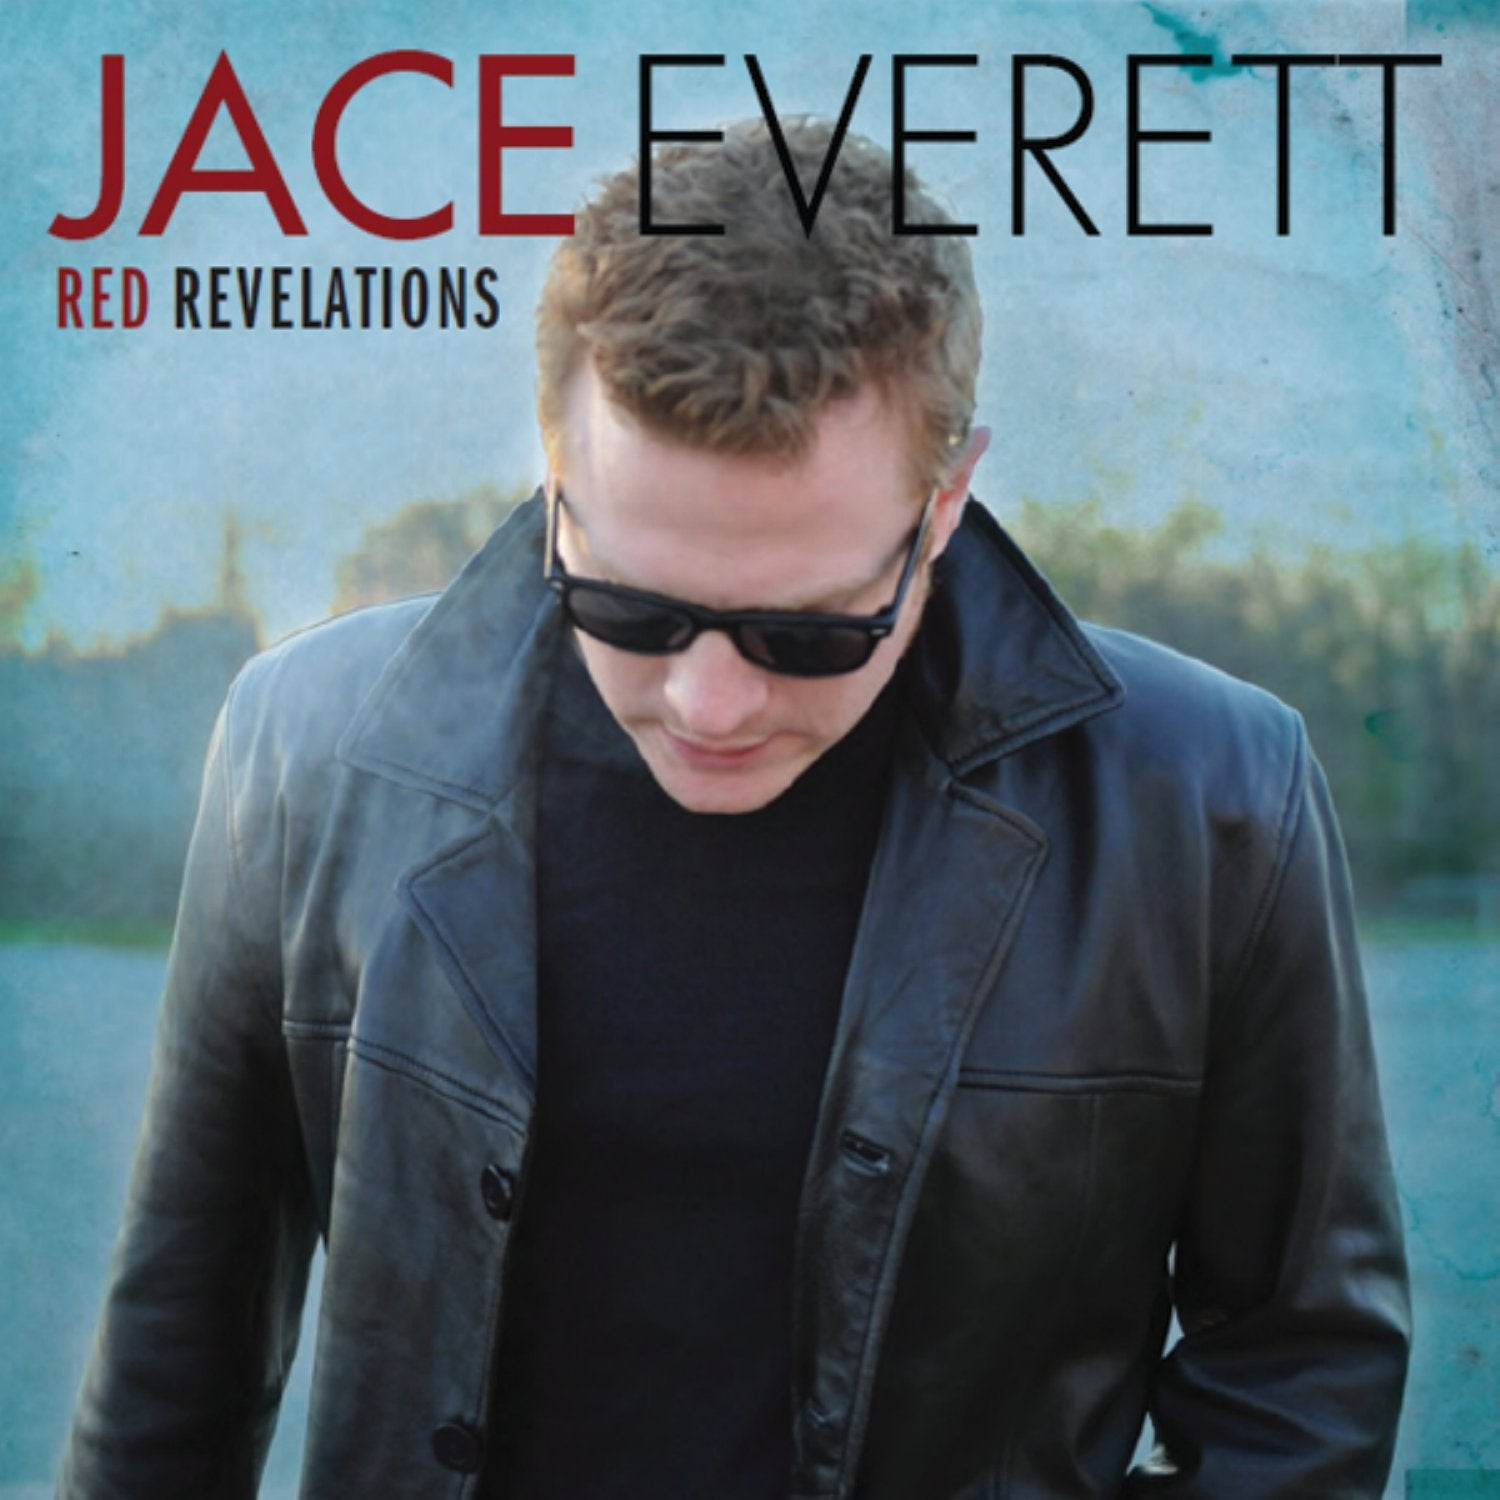 EVERETT;JACE - RED REVELATIONS [Audio CD] EVERETT;JACE